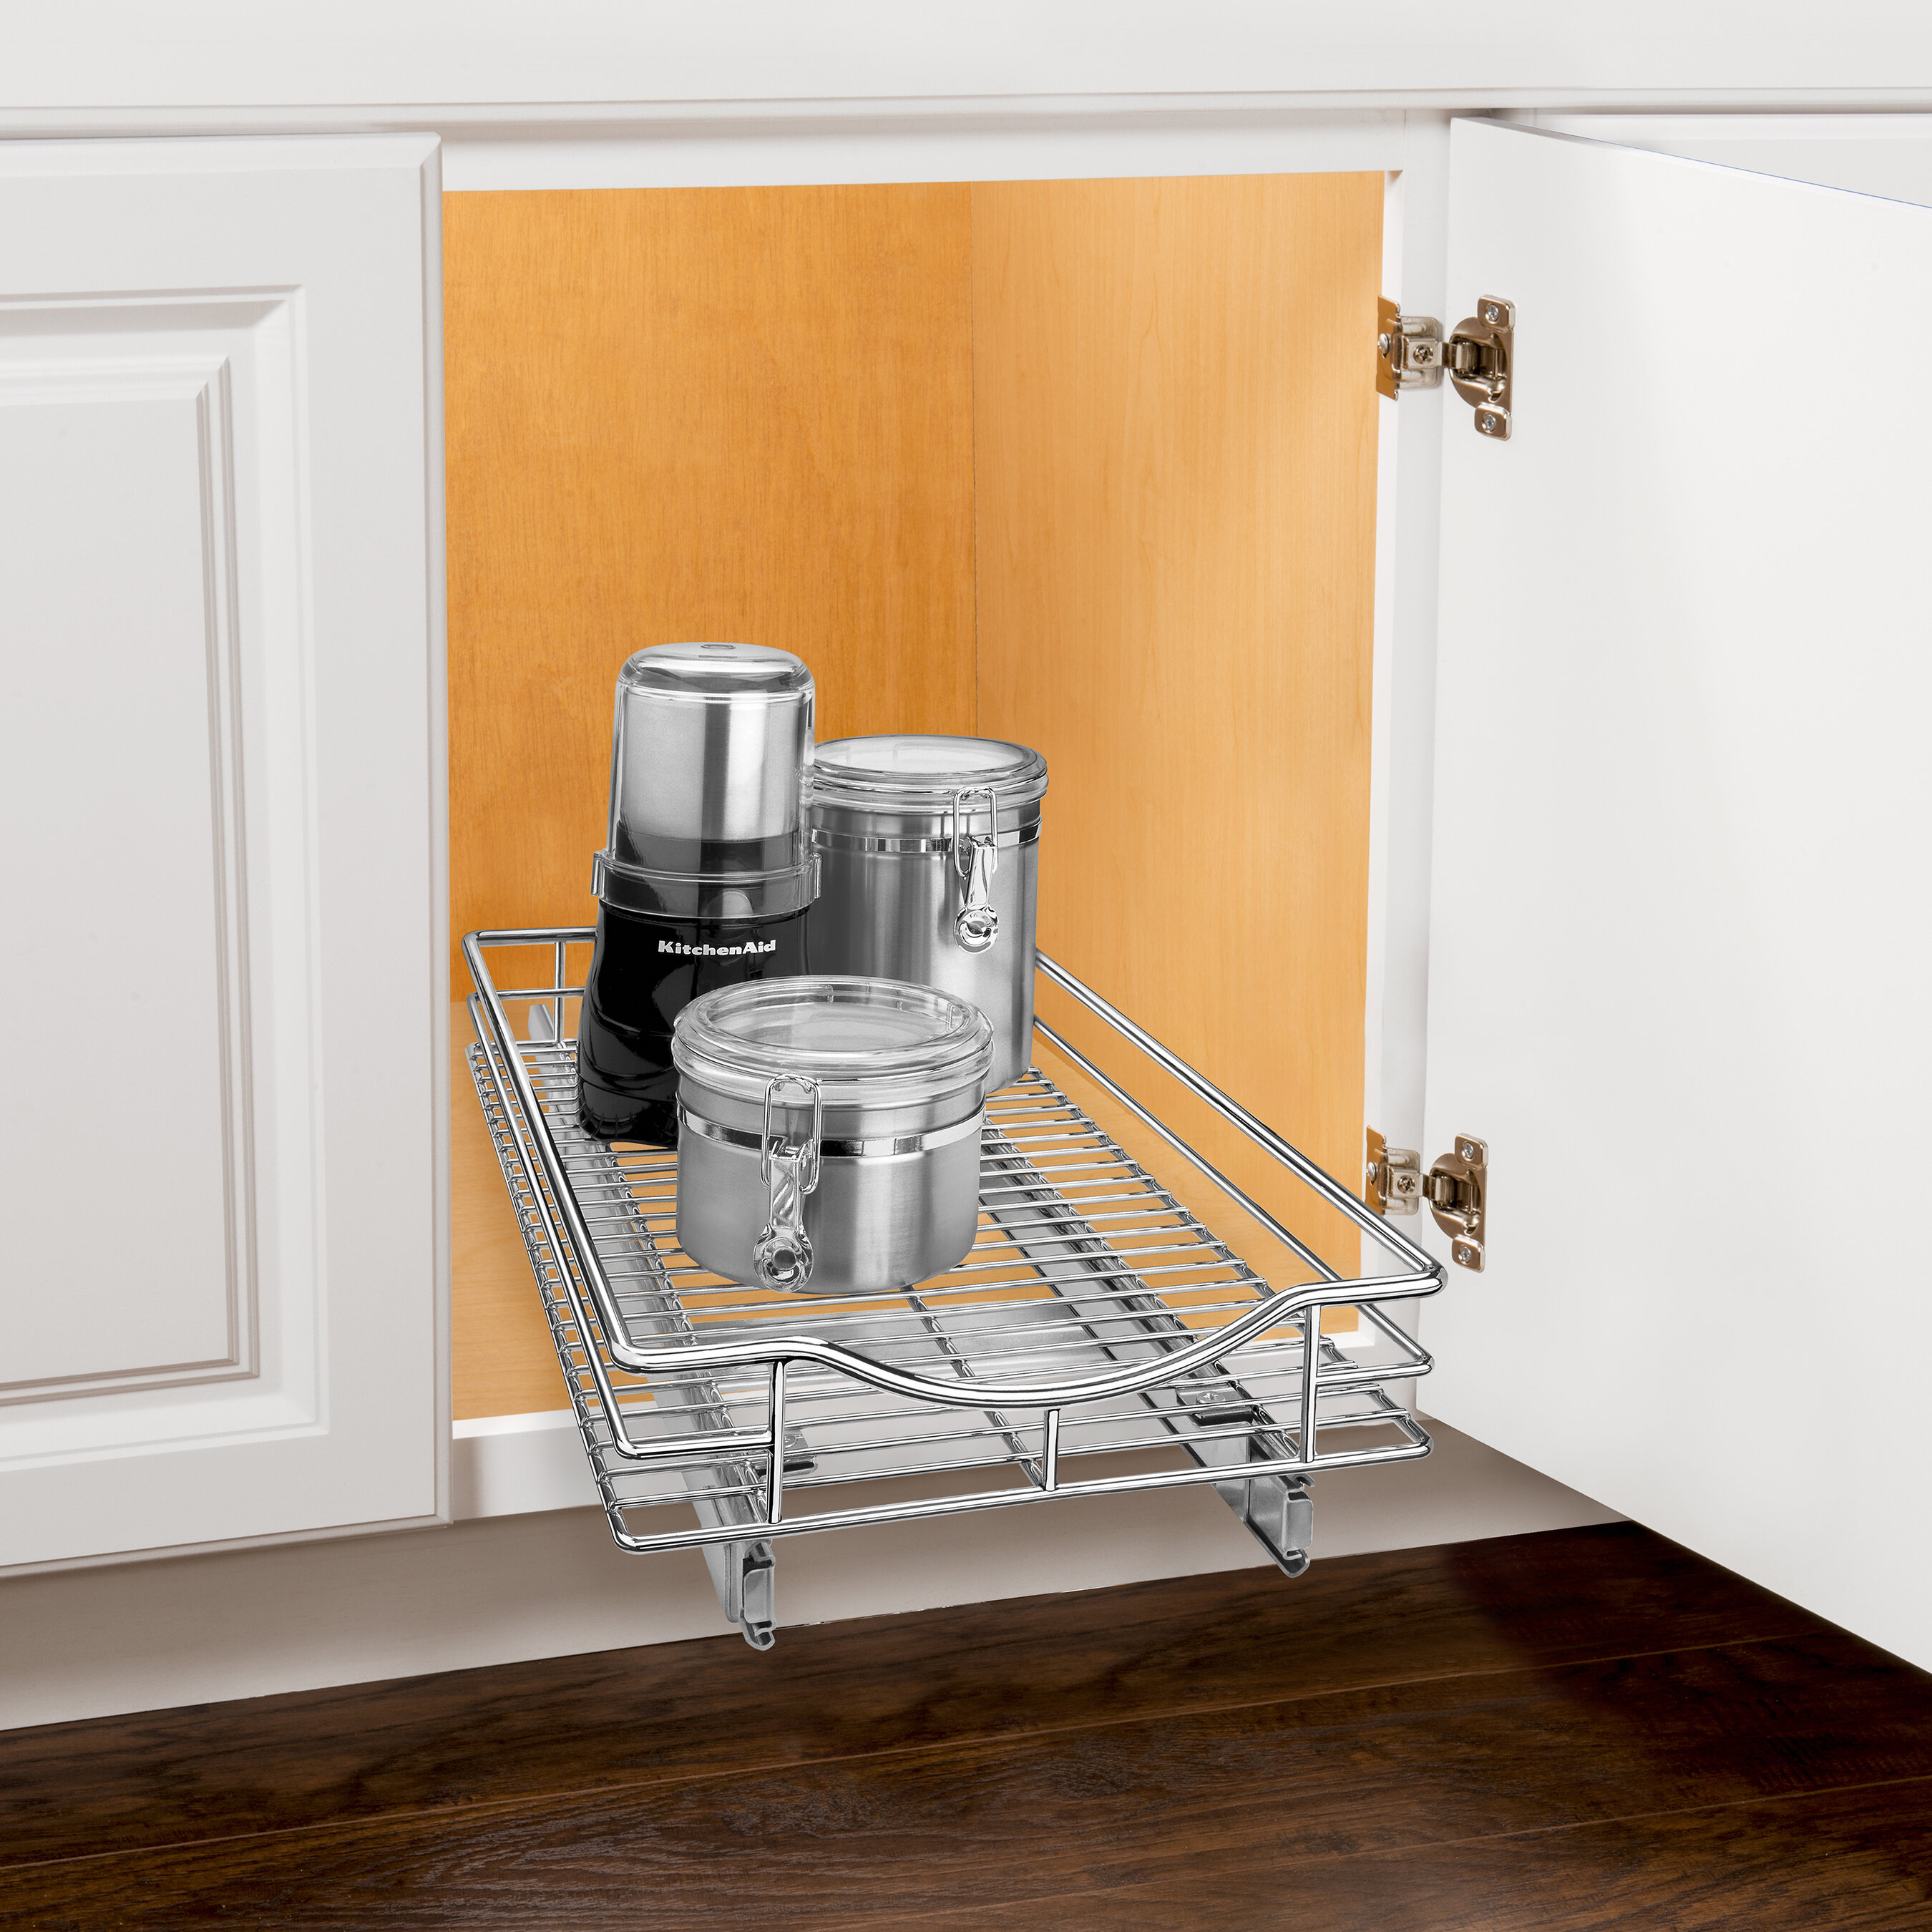 Lynk Roll Out Cabinet Organizer Pull Out Drawer Under Cabinet Sliding Shelf 11 Inch Wide X